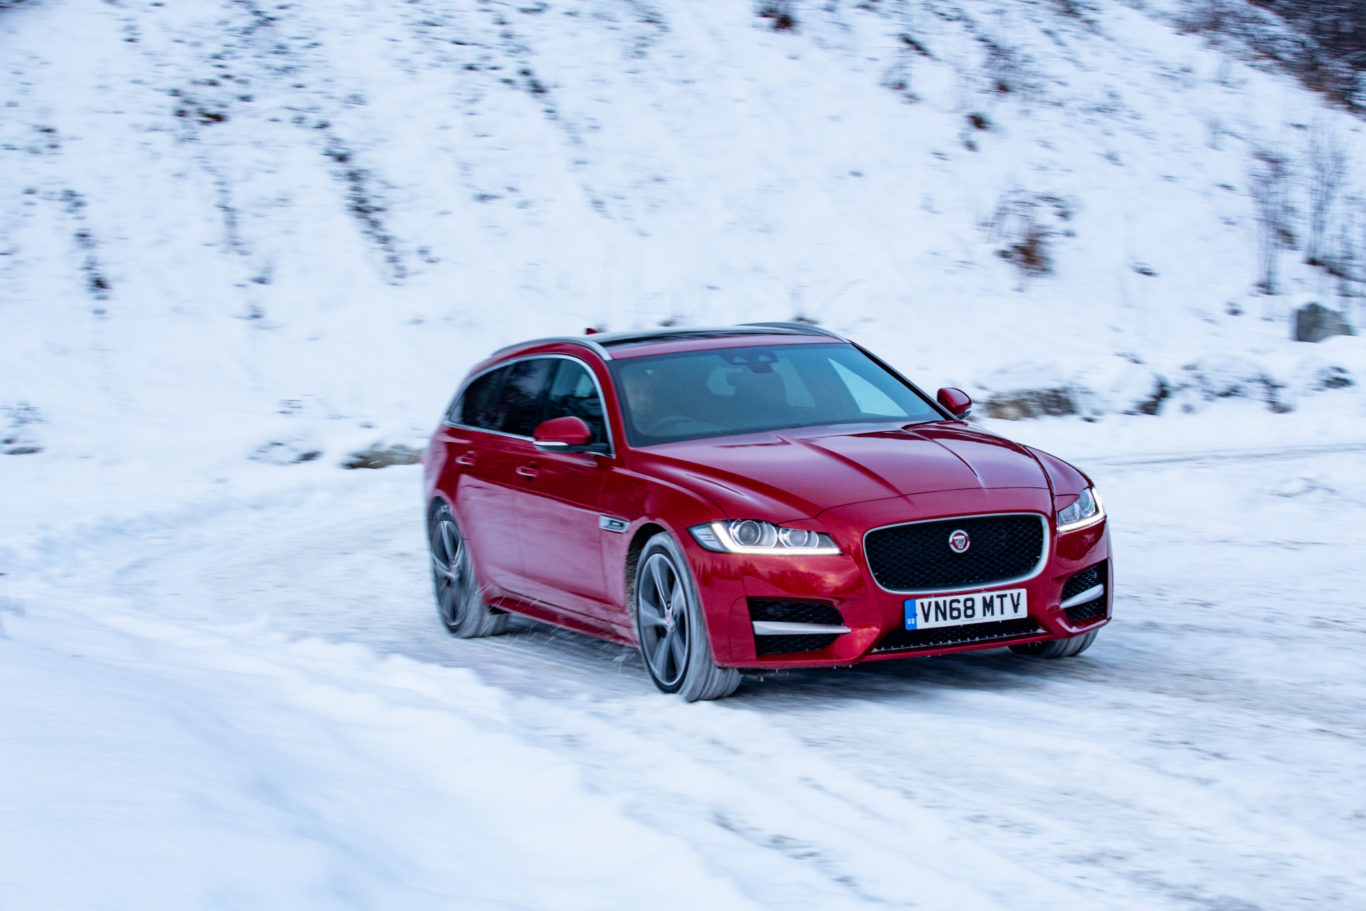 The Sportbrake goes up against the likes of the BMW 5 Series Touring and Audi A6 Avant